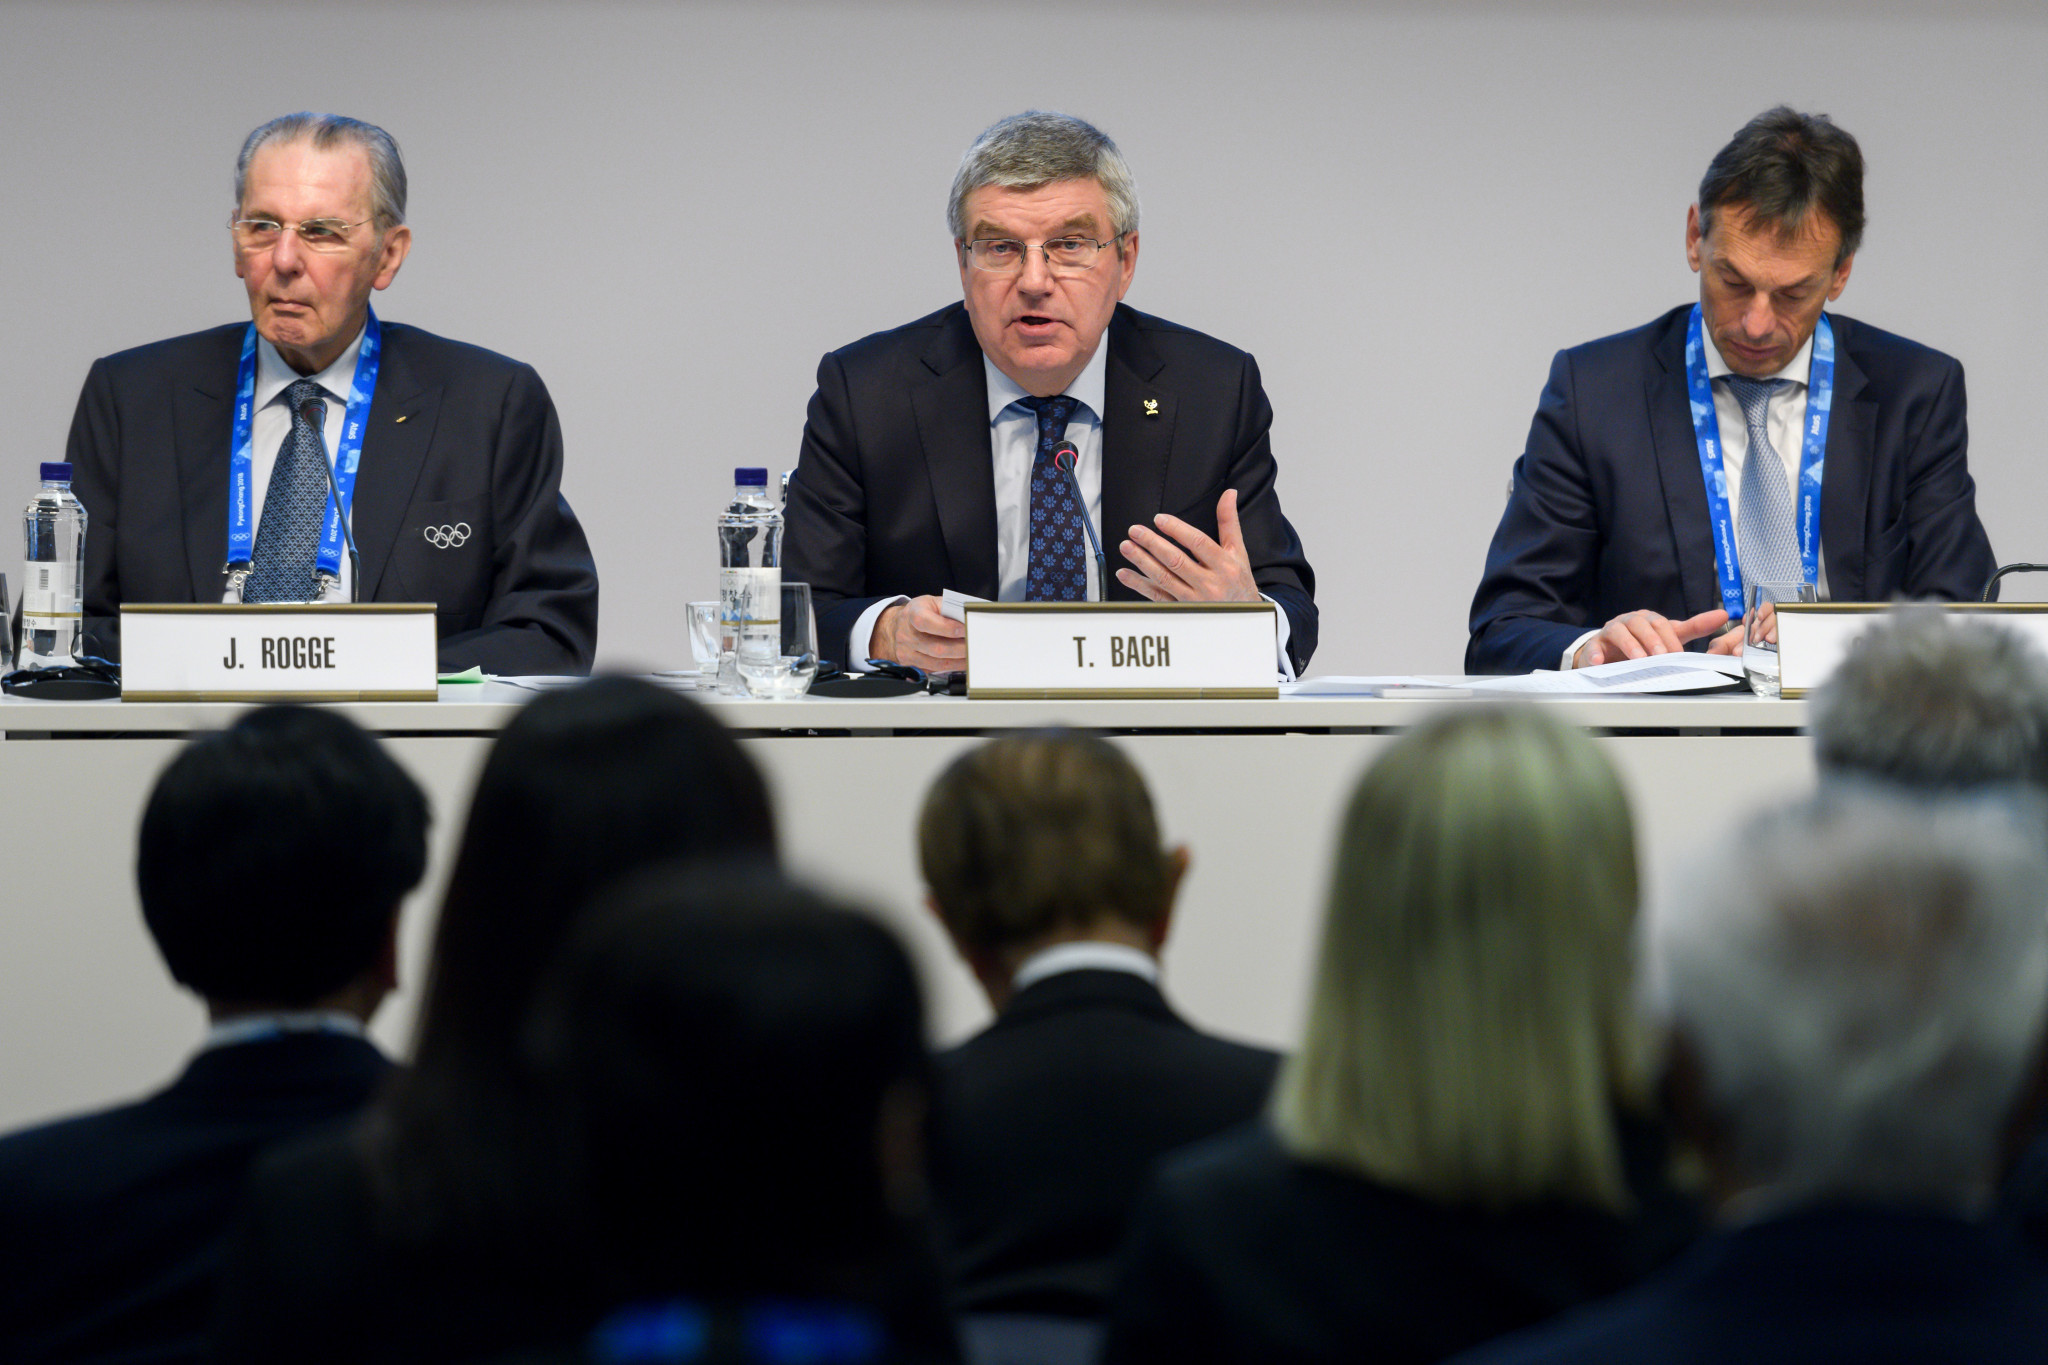 The IOC sought to draw a line under the Russian doping crisis at the IOC Session in Pyeongchang last year ©Getty Images